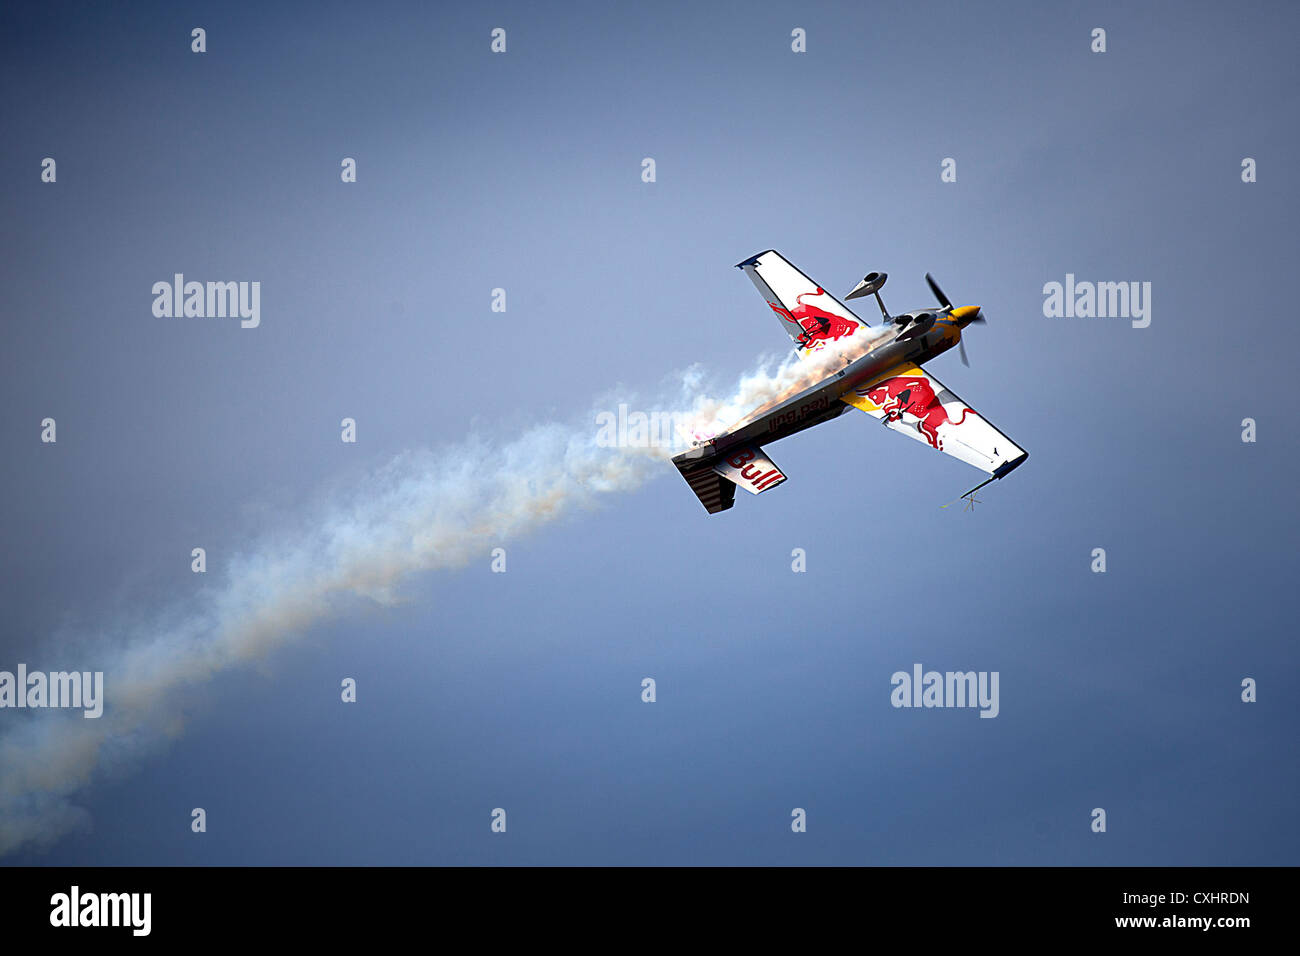 Aerobatic performer Kirby Chambliss flies his Red Bull Edge 540 aircraft upside down while performing during the - Stock Image